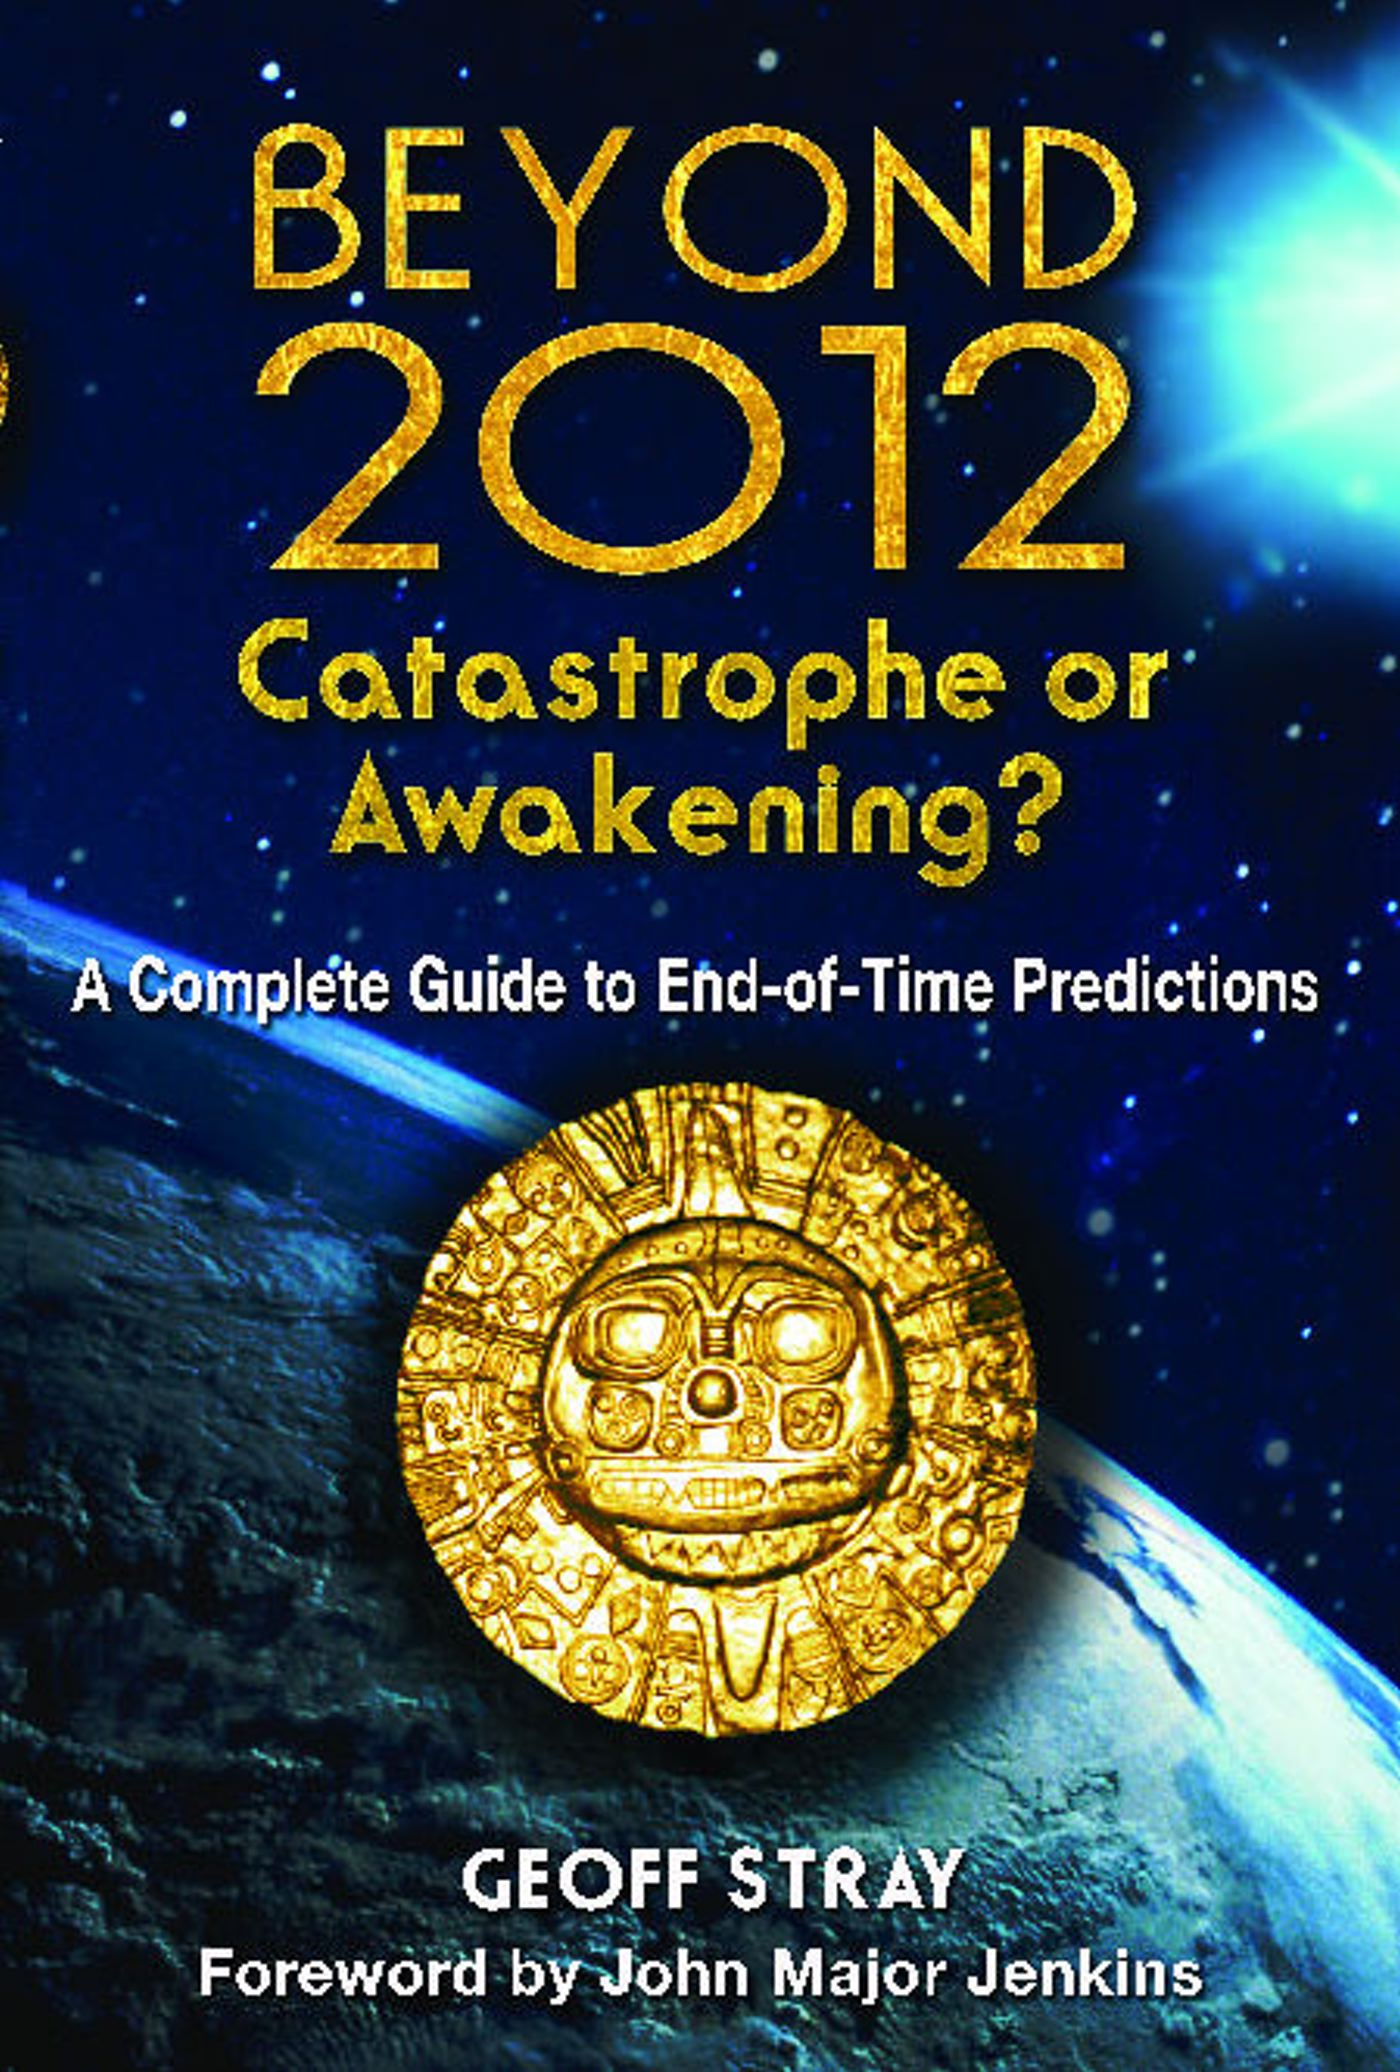 Beyond 2012 catastrophe or awakening 9781591430971 hr